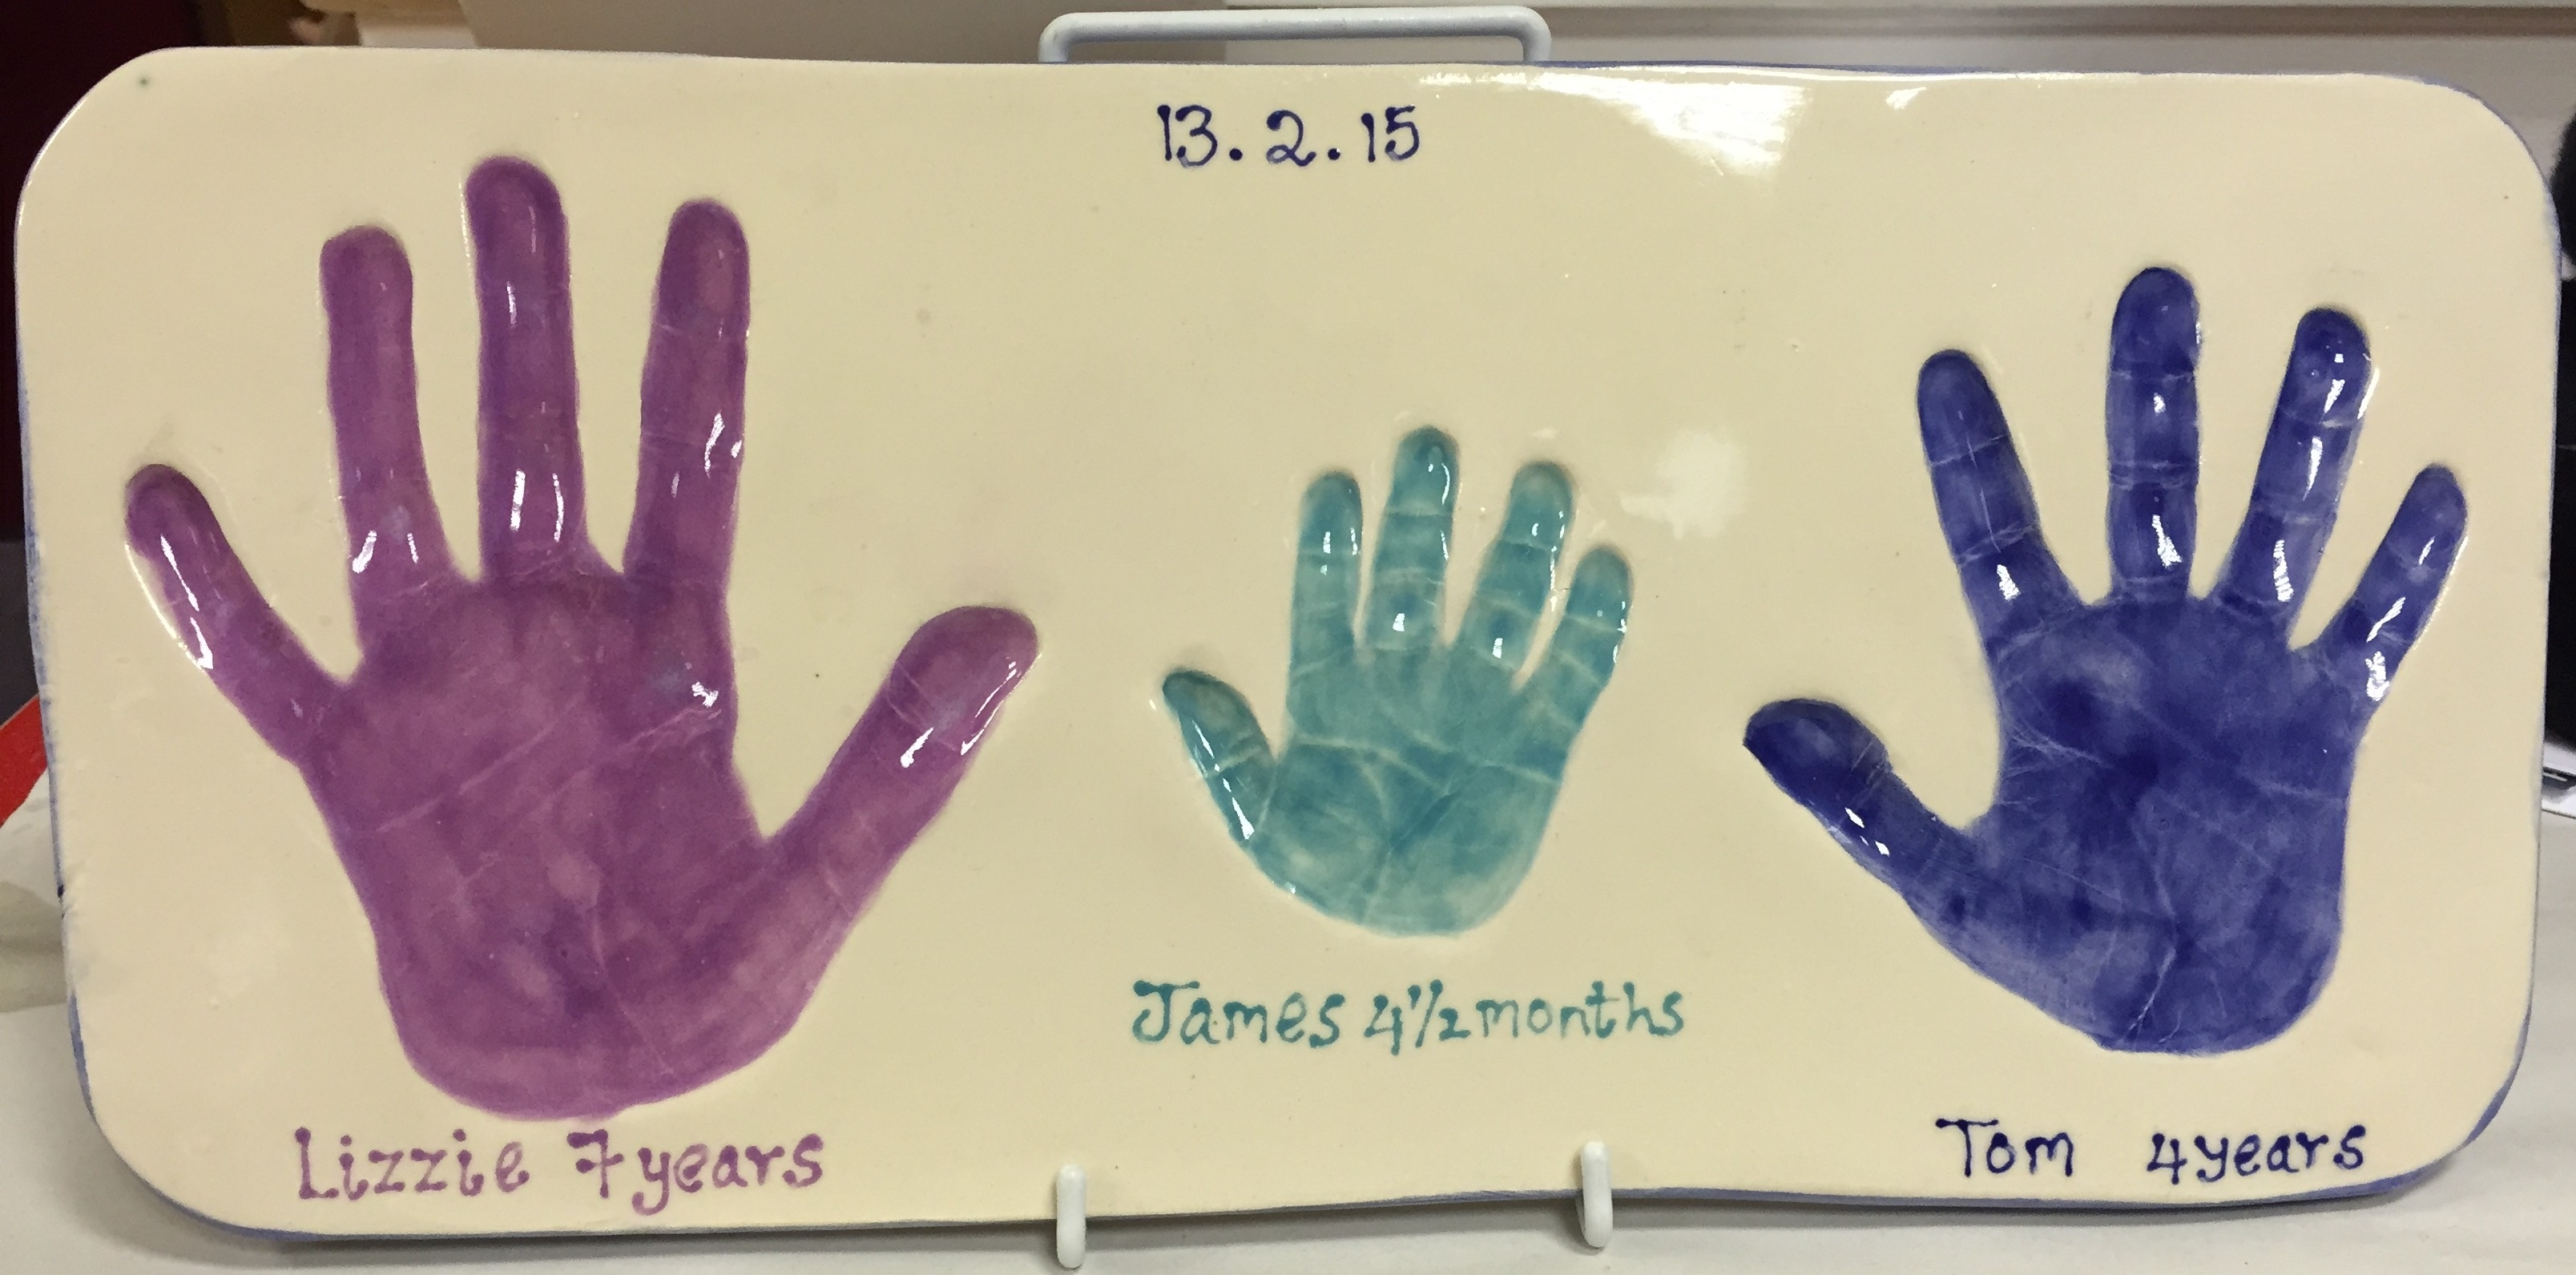 Hand & Footprints - Fired Treasures regarding Handprint Footprint With Siblings Ideas